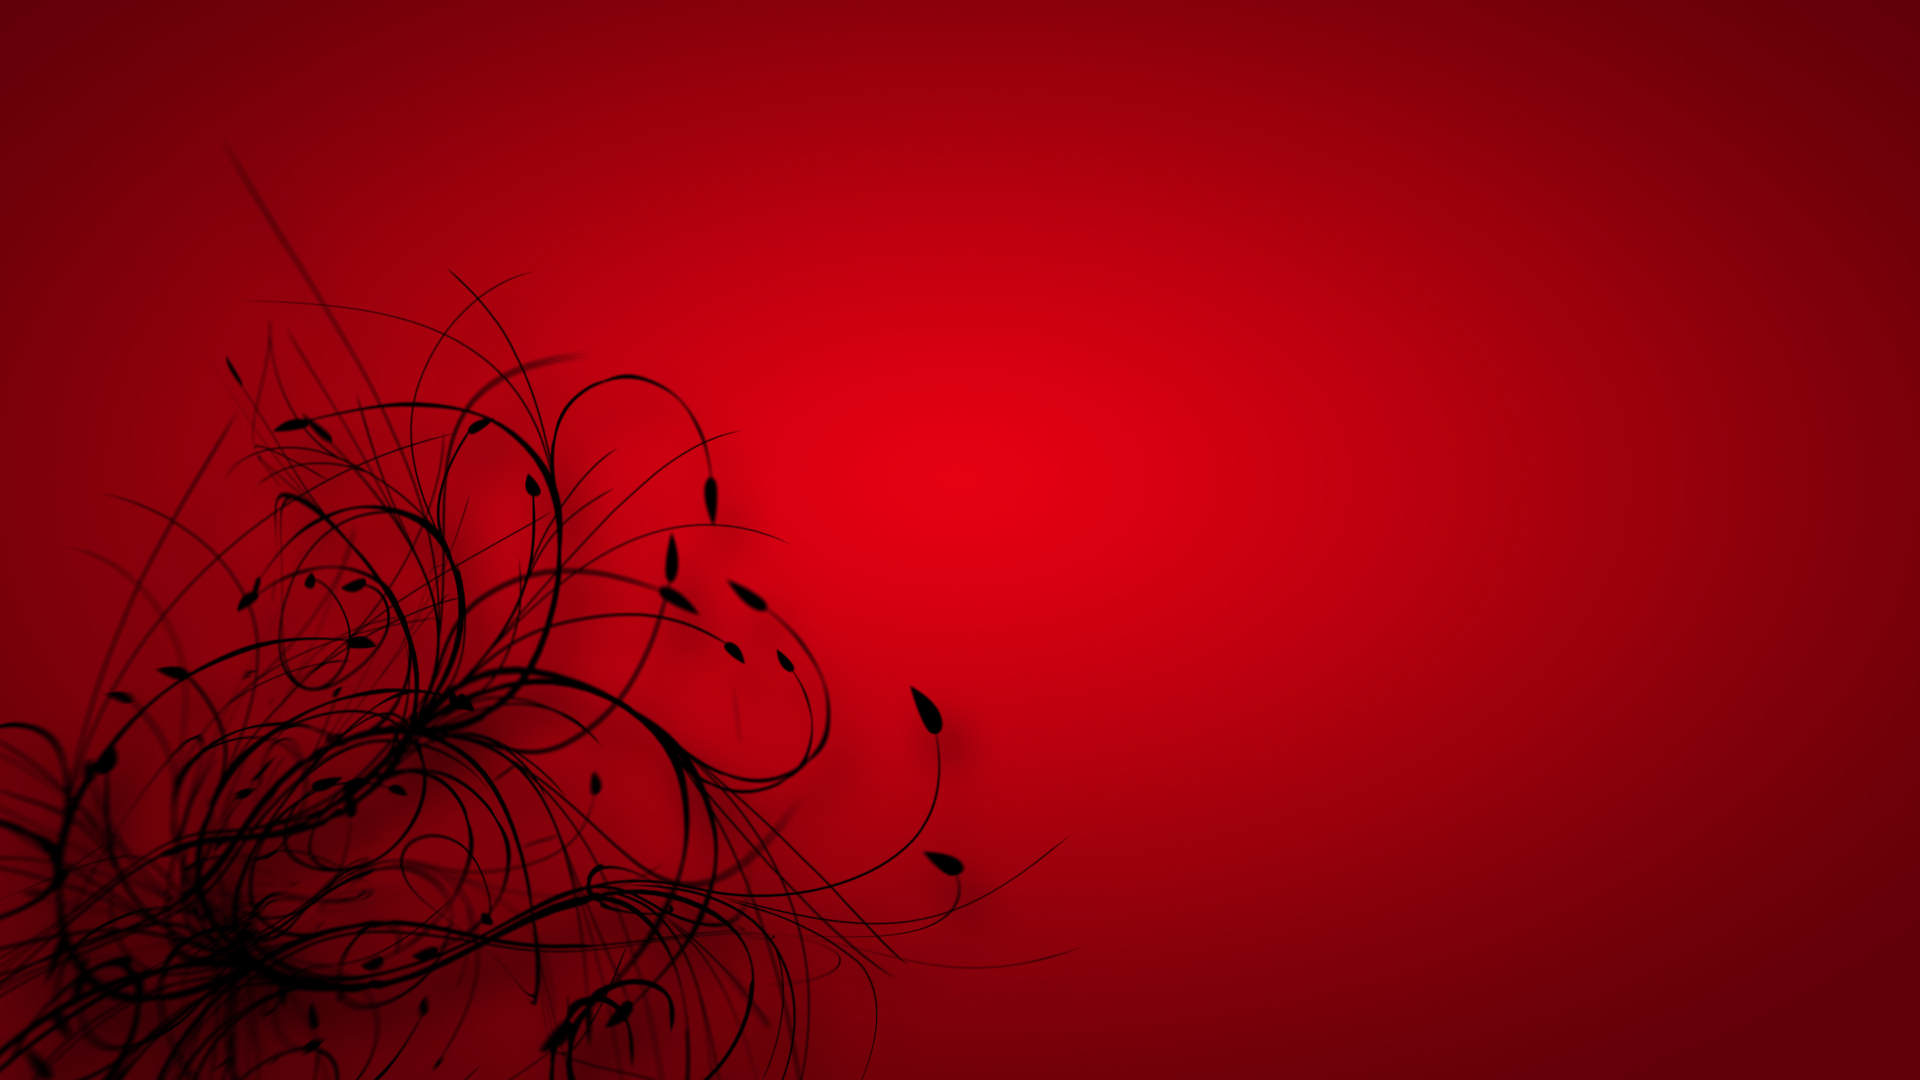 Red Black Abstract Wallpaper